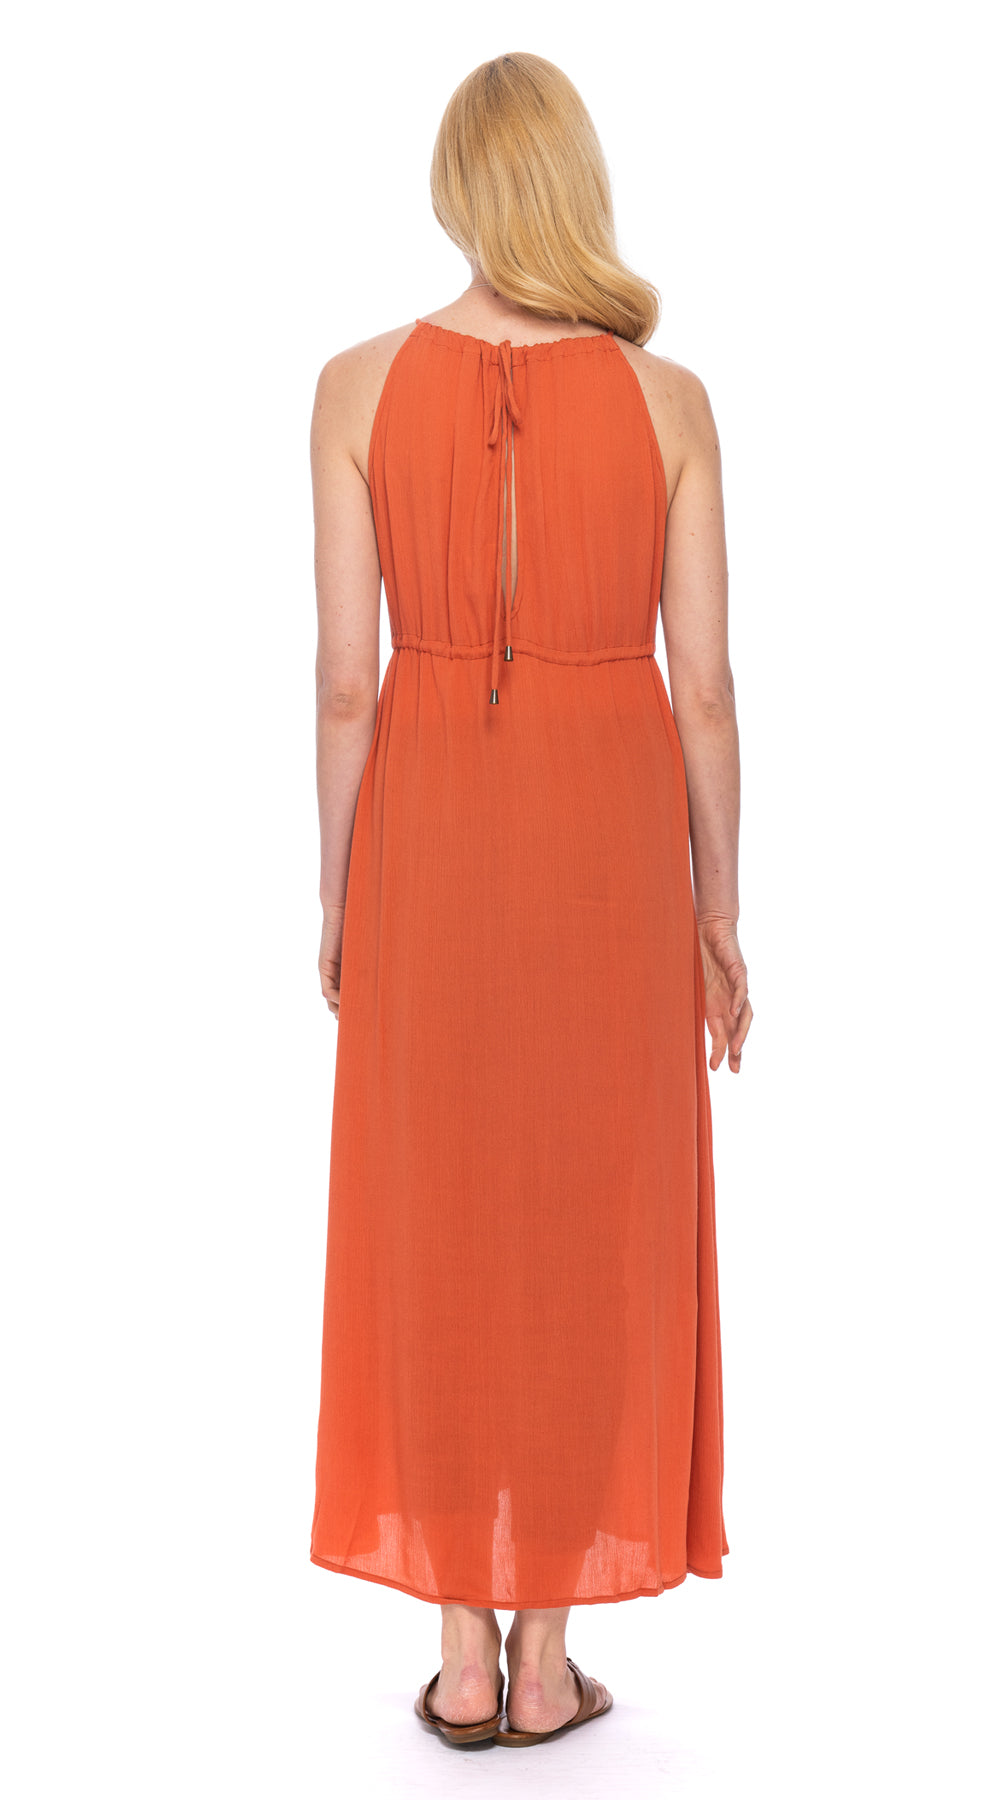 Lulu Dress - rayon crepe - tangerine